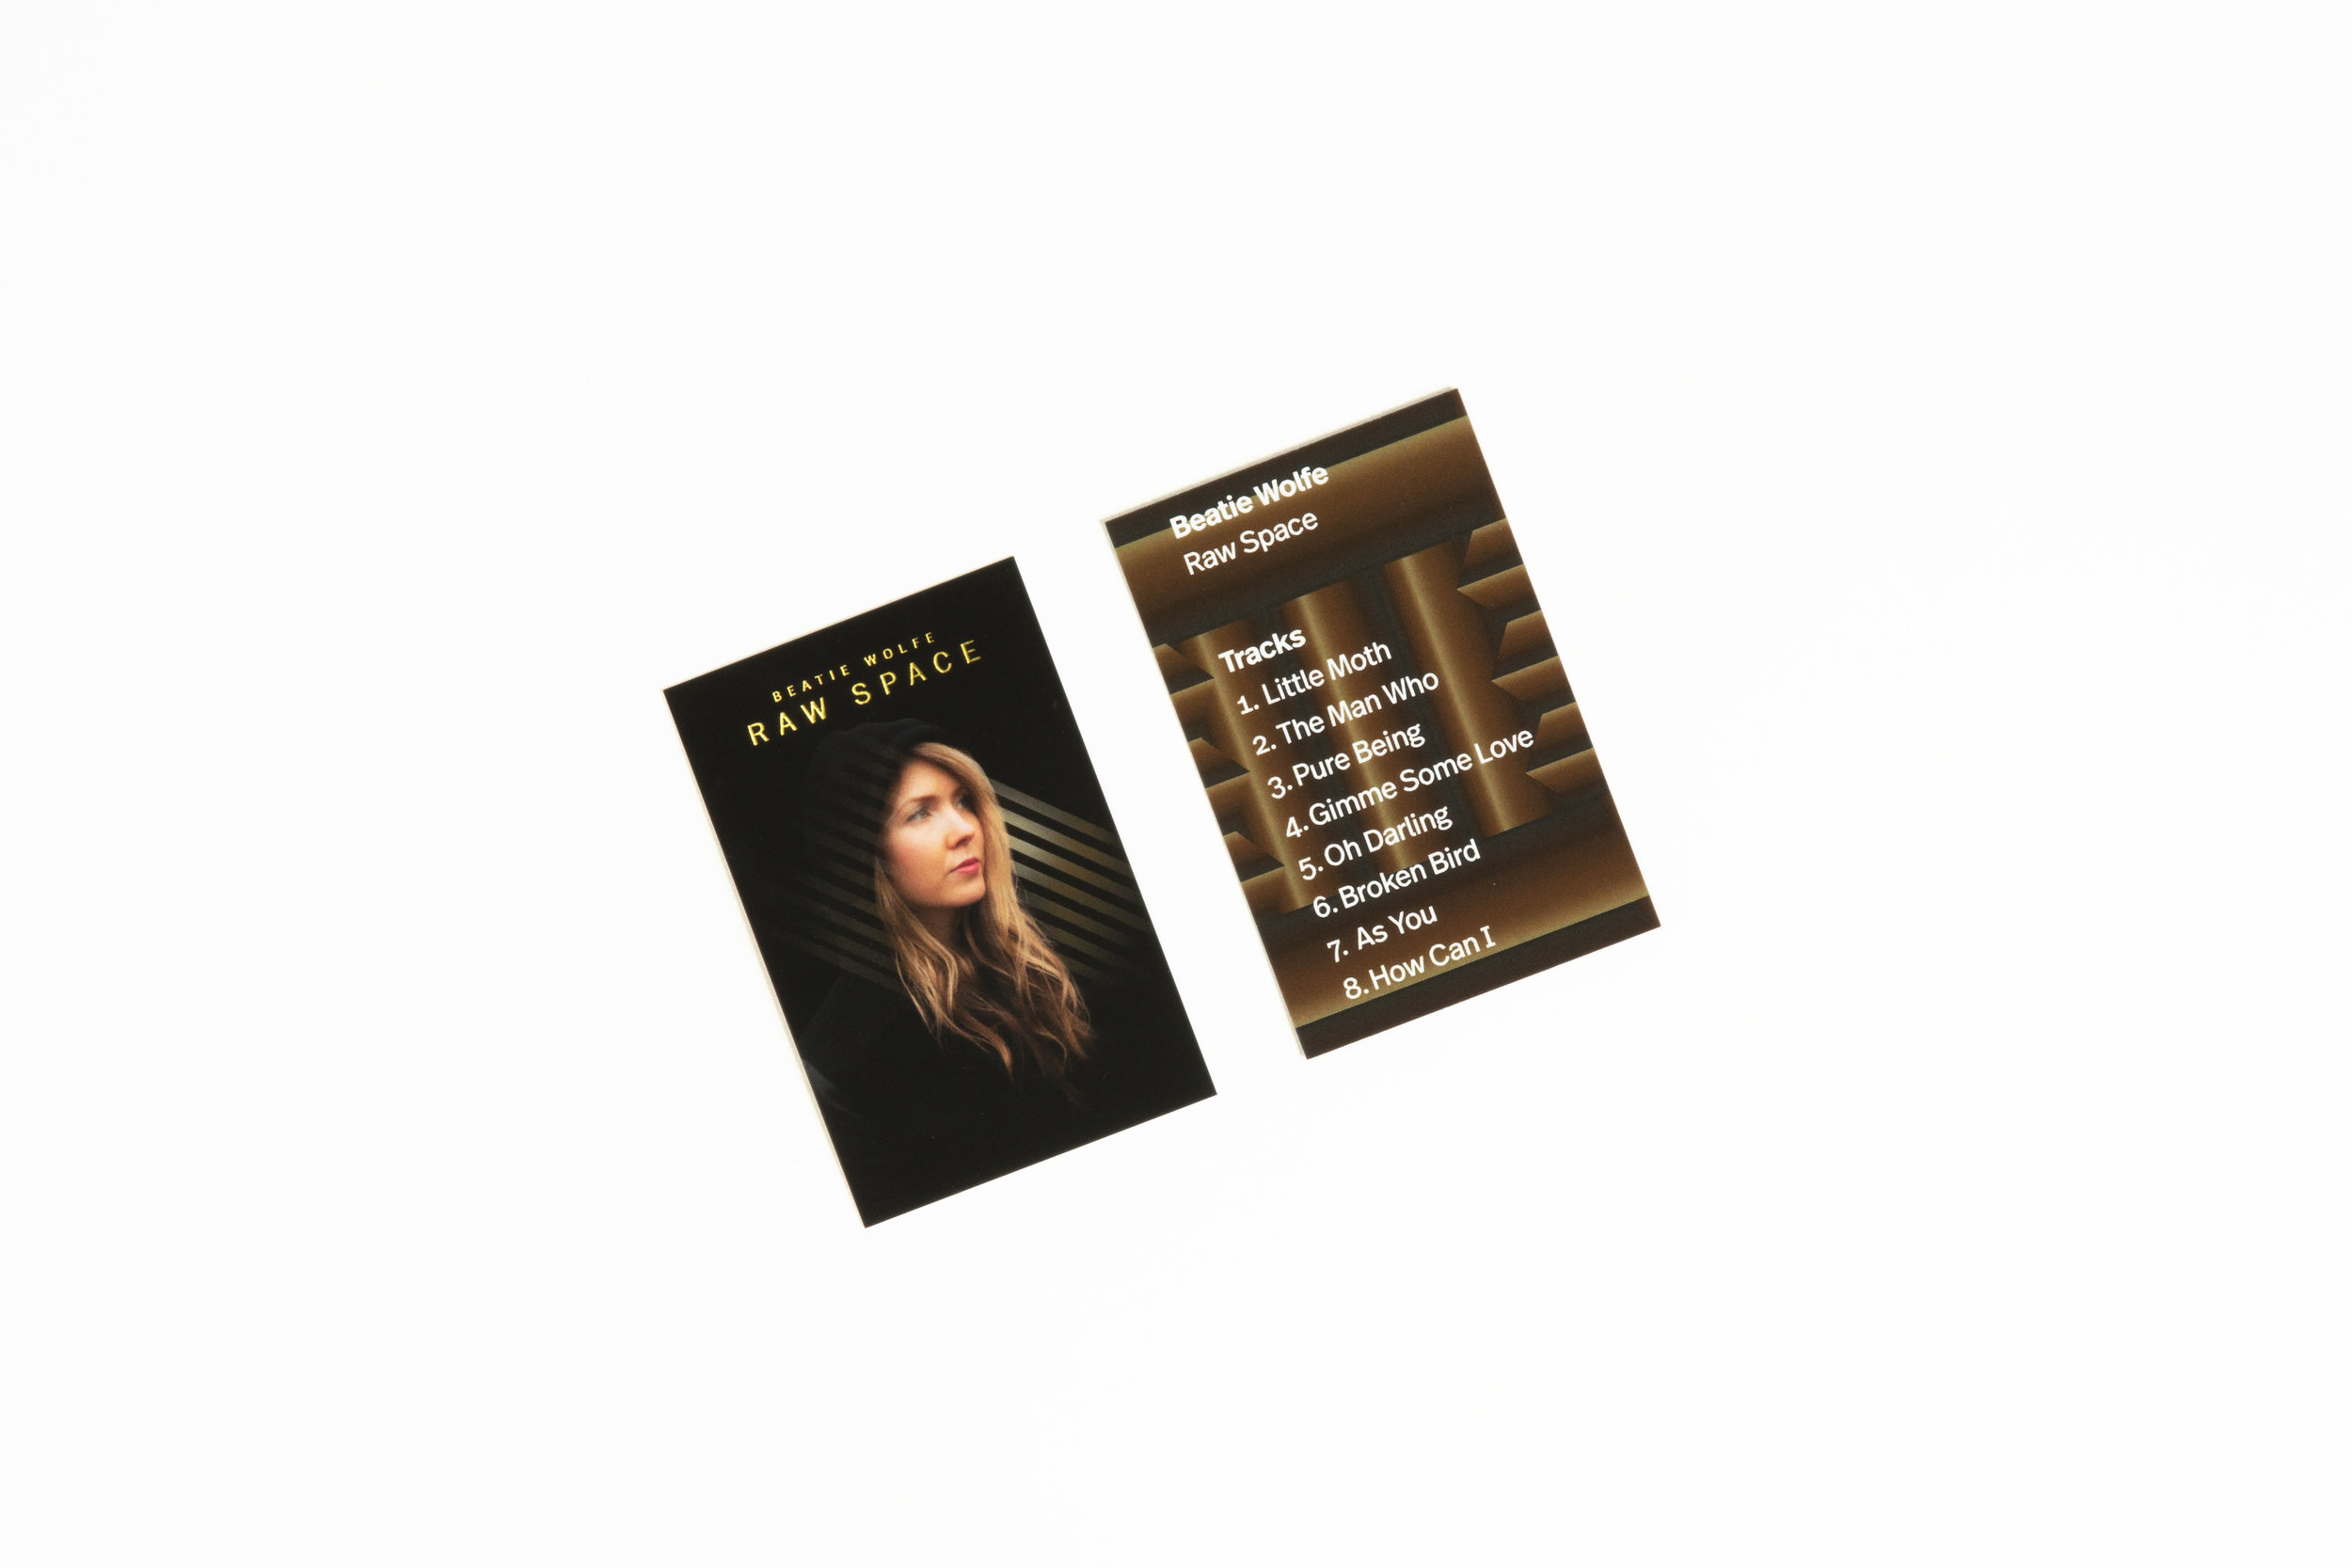 Emily Gobeille designs Beatie Wolfe's album card off her Raw Space Album